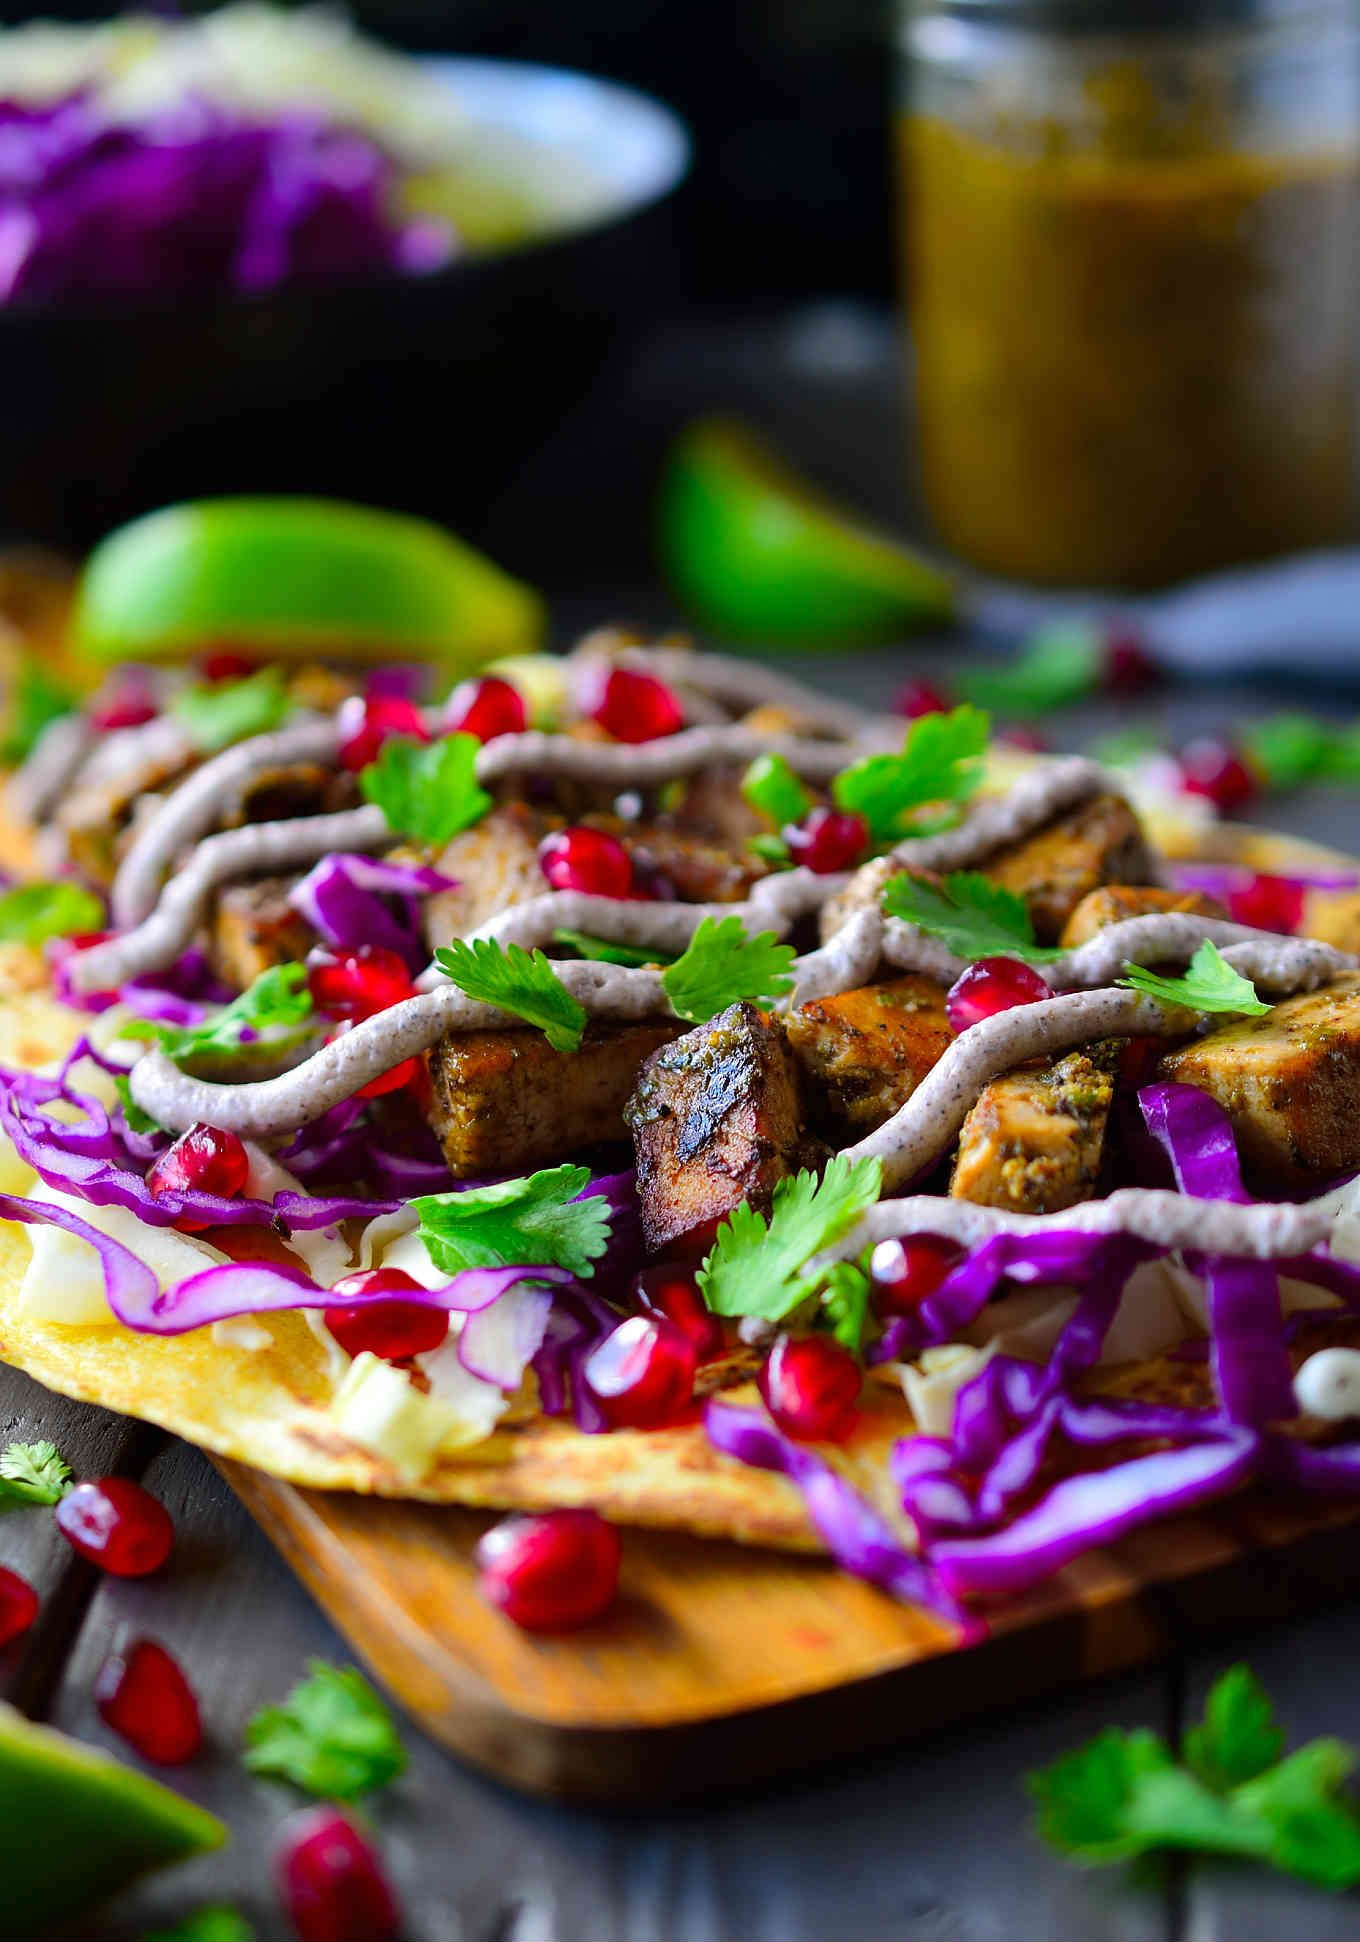 These colourful Jamaican jerk tofu tacos are easy, delicious and bursting with a complex mix of flavours and textures. Simply marinate some tofu in an easy blender wet Jamaican jerk seasoning, fry them up and add your favorite toppings. These vegan tacos are so delicious you won't be able to get enough!